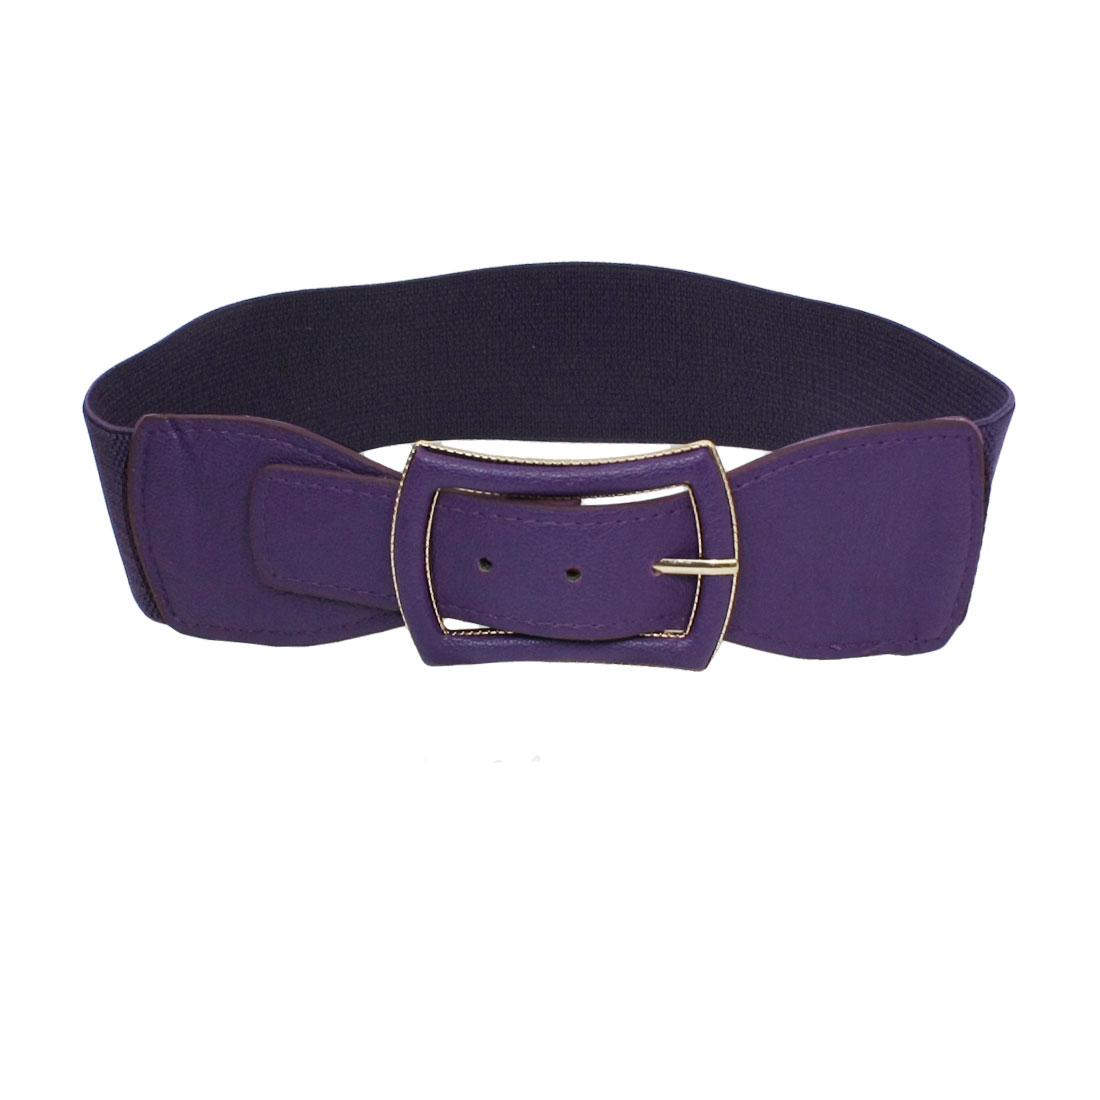 Women Single Pin Buckle Design Elastic Waist Belt Cinch Band Purple